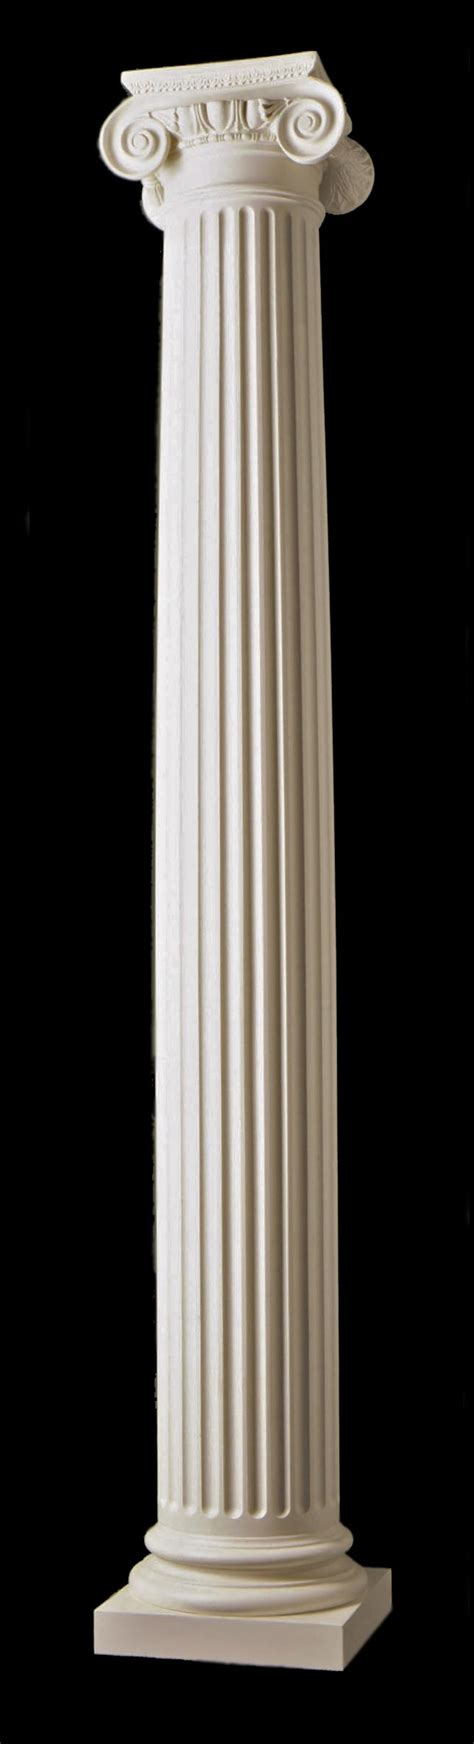 home columns beautiful house column designs by chadsworth columns roman ionic fluted wood columns